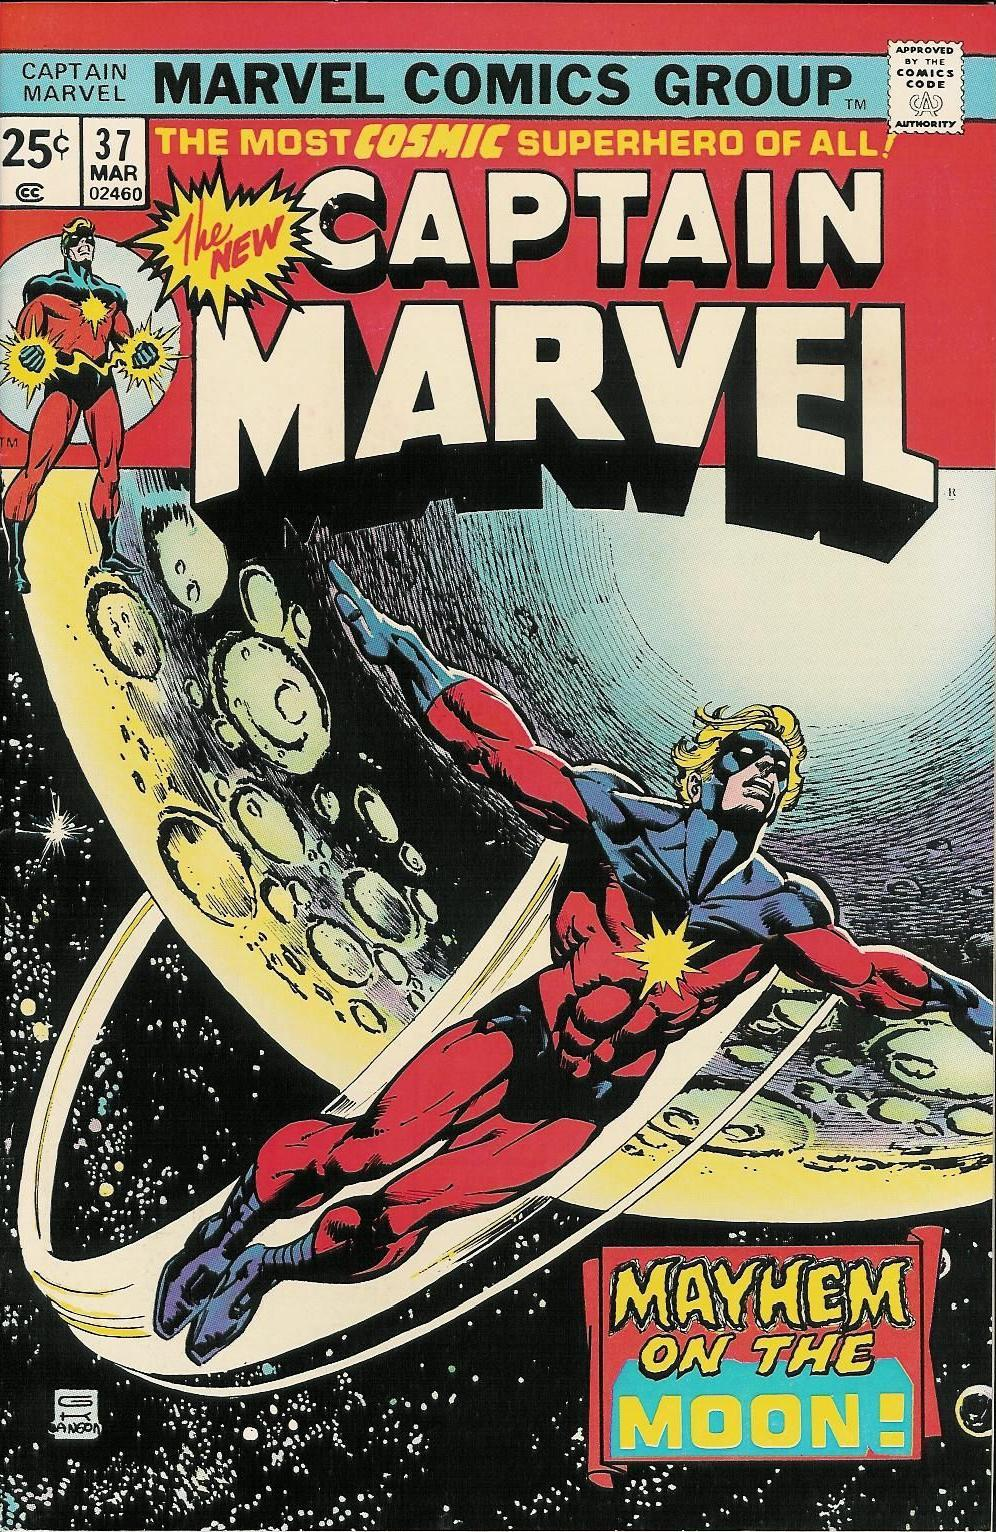 ARTIST OF THE DAY - GIL KANE